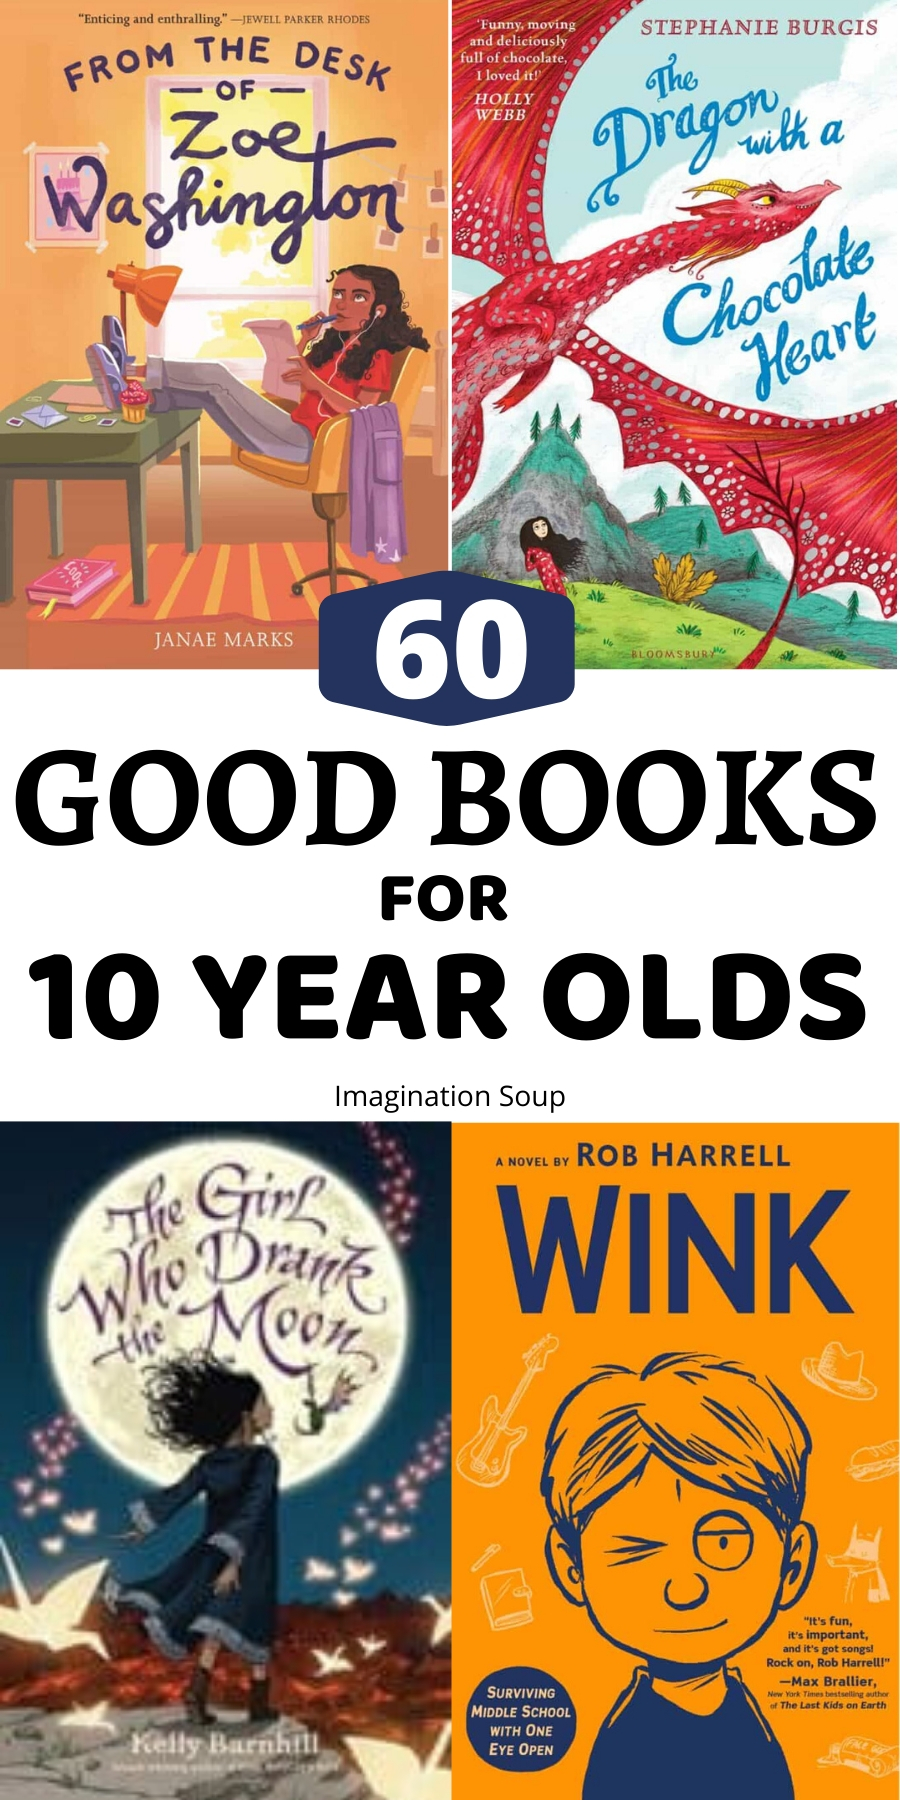 Best Books for 10 Year Olds 5th Grade   Imagination Soup